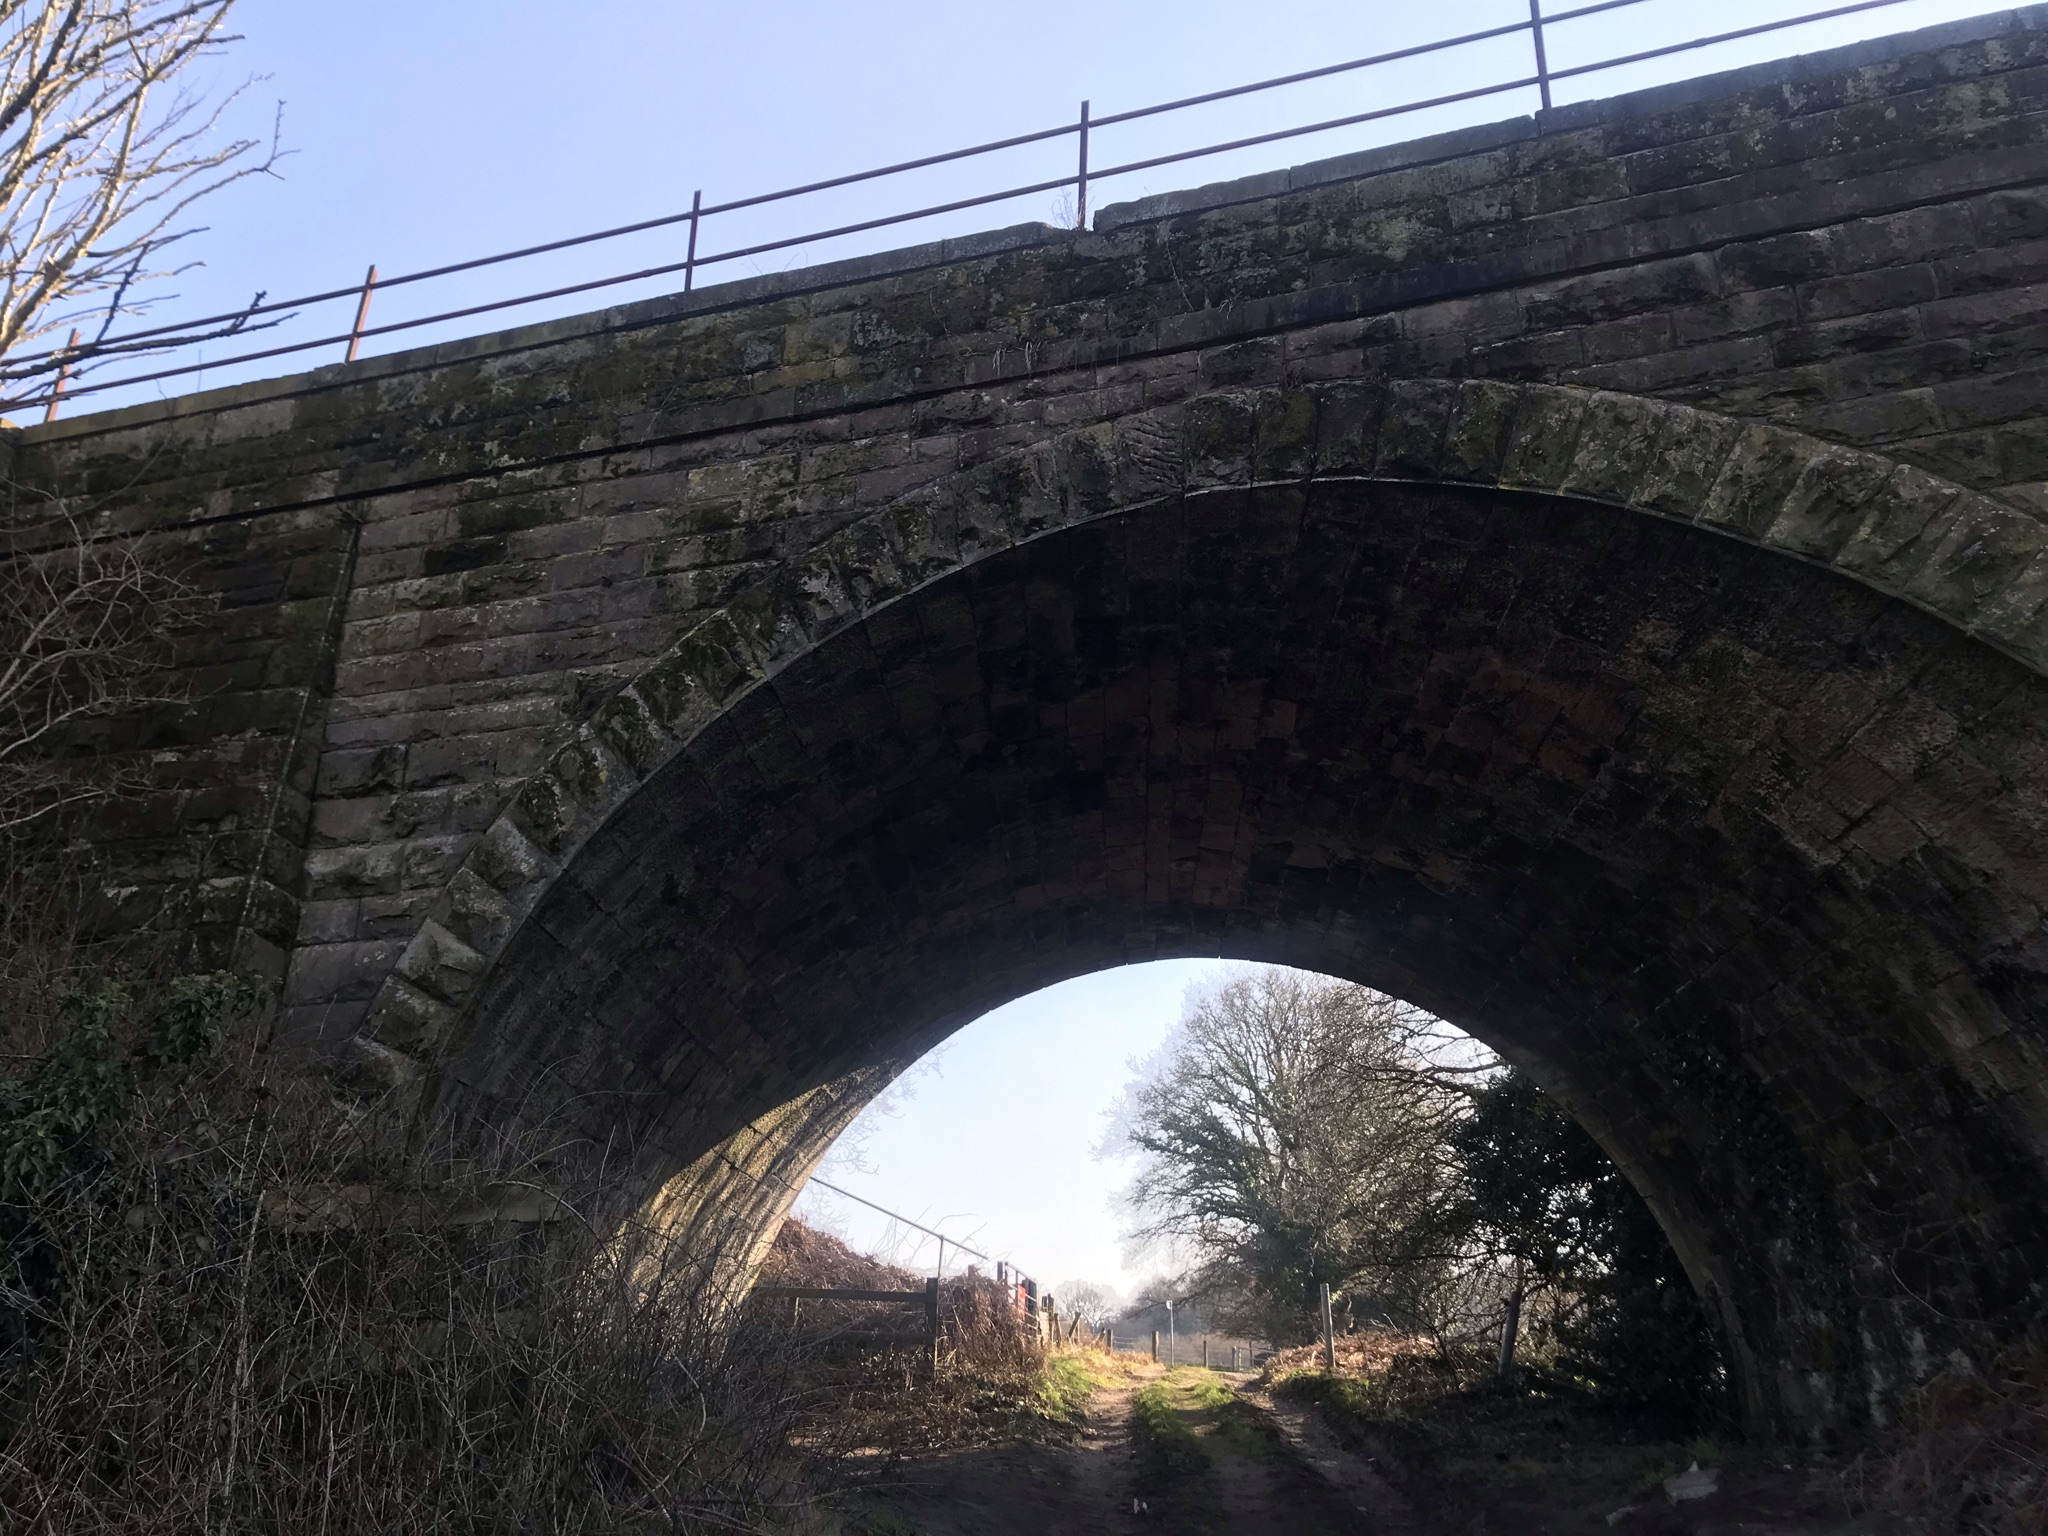 Looking up at a stone arch bridge. There is a rutted track underneath with bare trees in the background